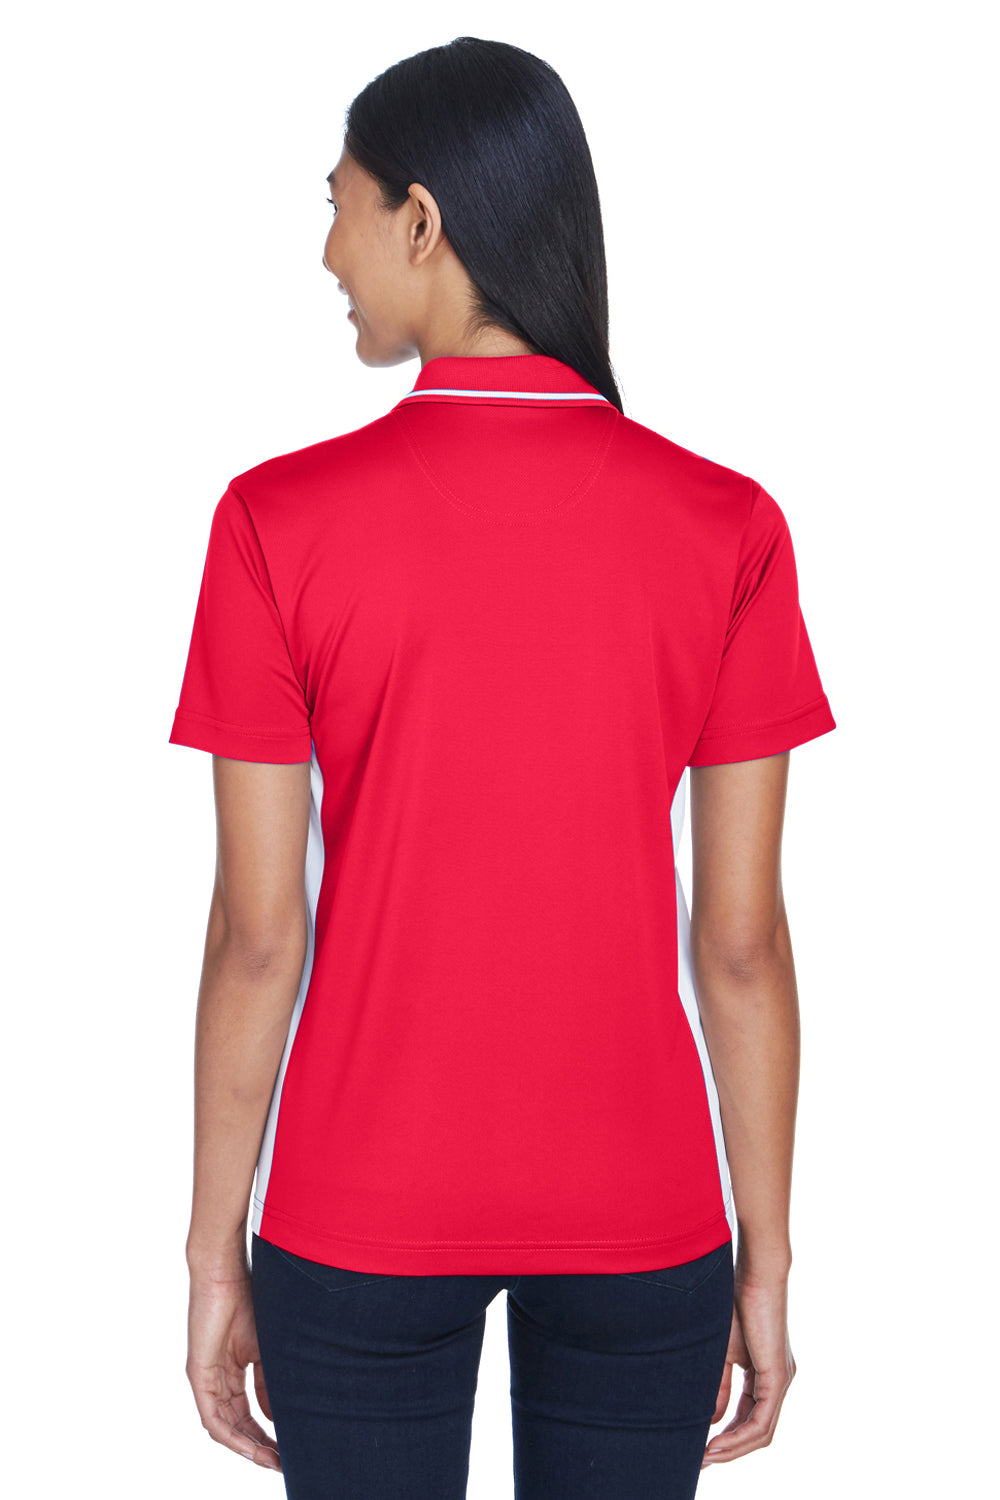 UltraClub 8406L Womens Cool & Dry Moisture Wicking Short Sleeve Polo Shirt Red/White Back